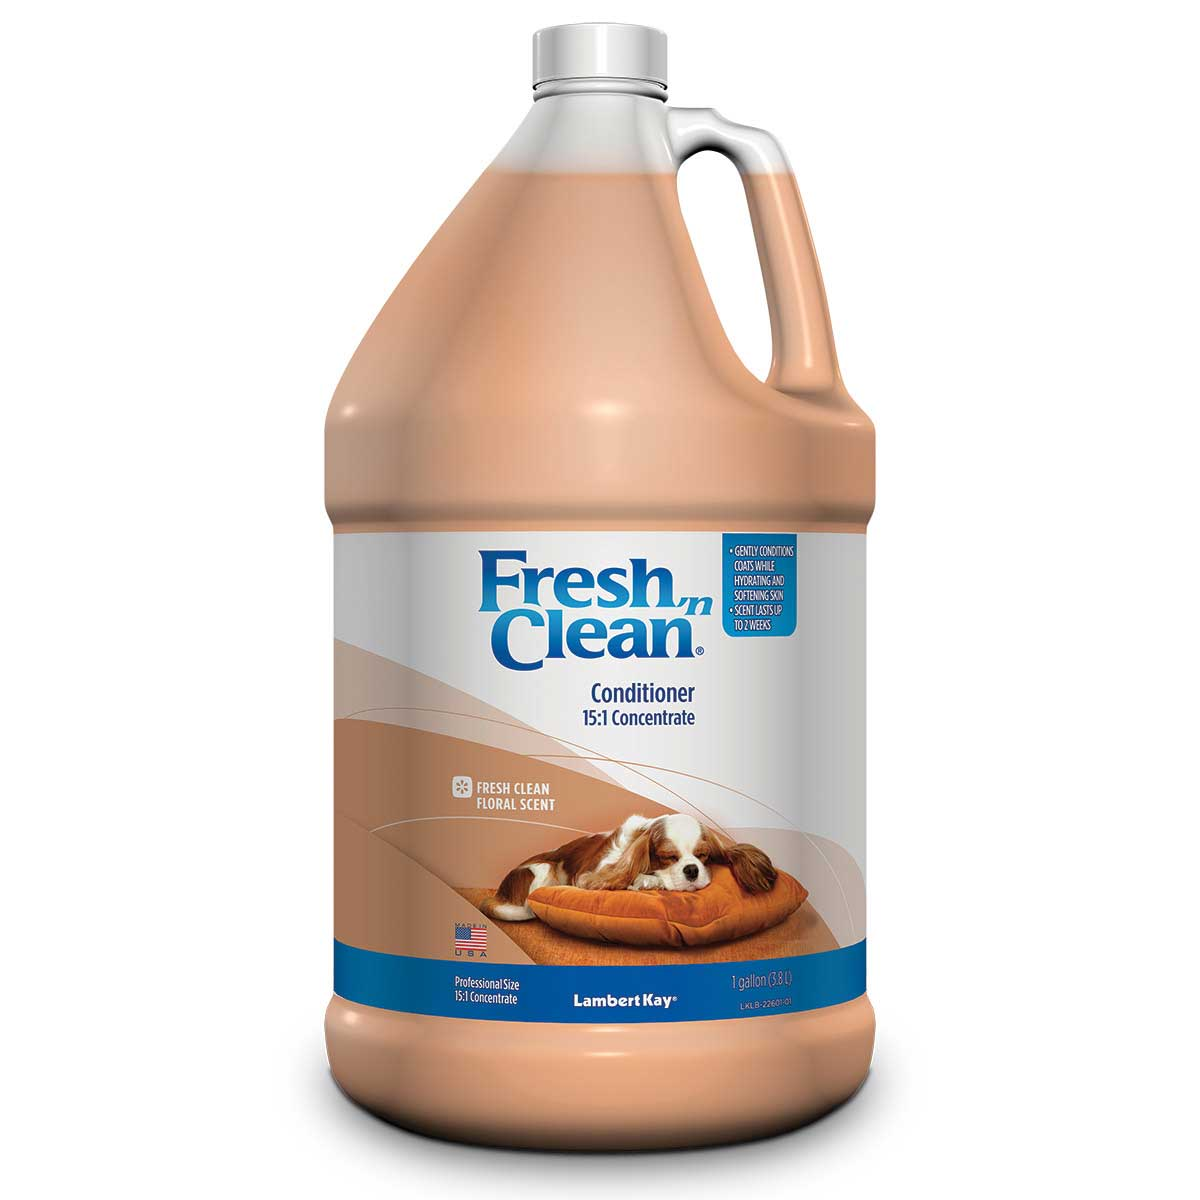 Fresh 'n Clean Fresh Clean Floral Scent Conditioner Gallon 15:1